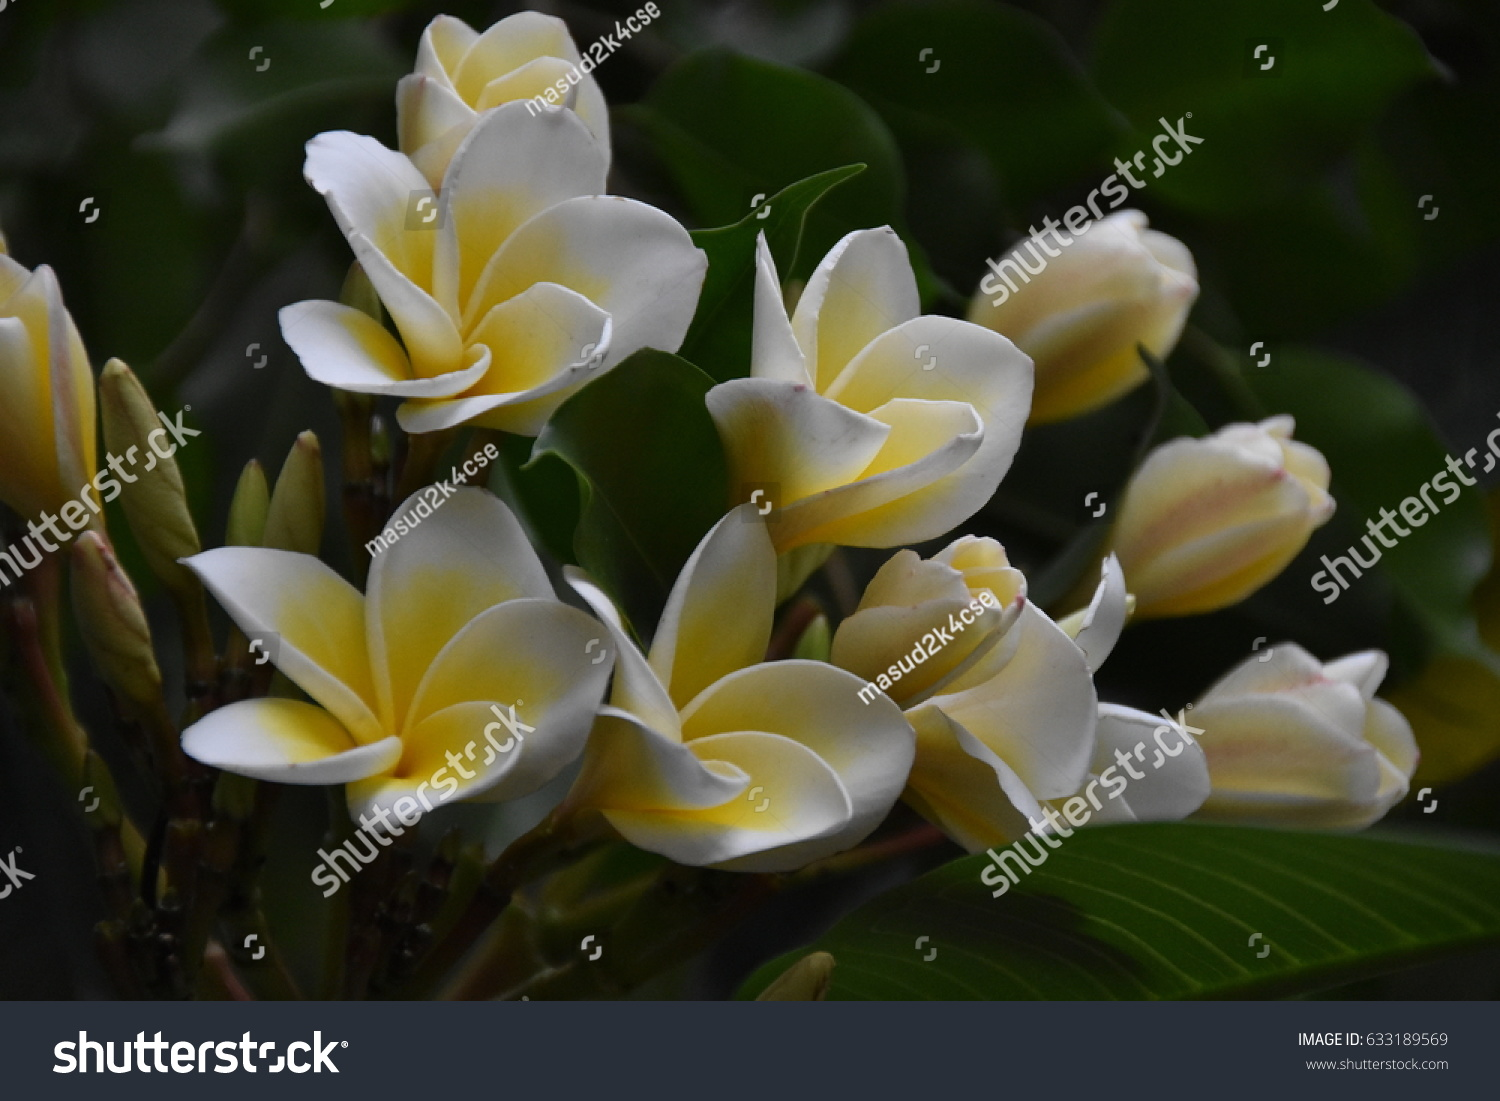 Natural beauty flowers stock photo edit now 633189569 shutterstock natural beauty flowers izmirmasajfo